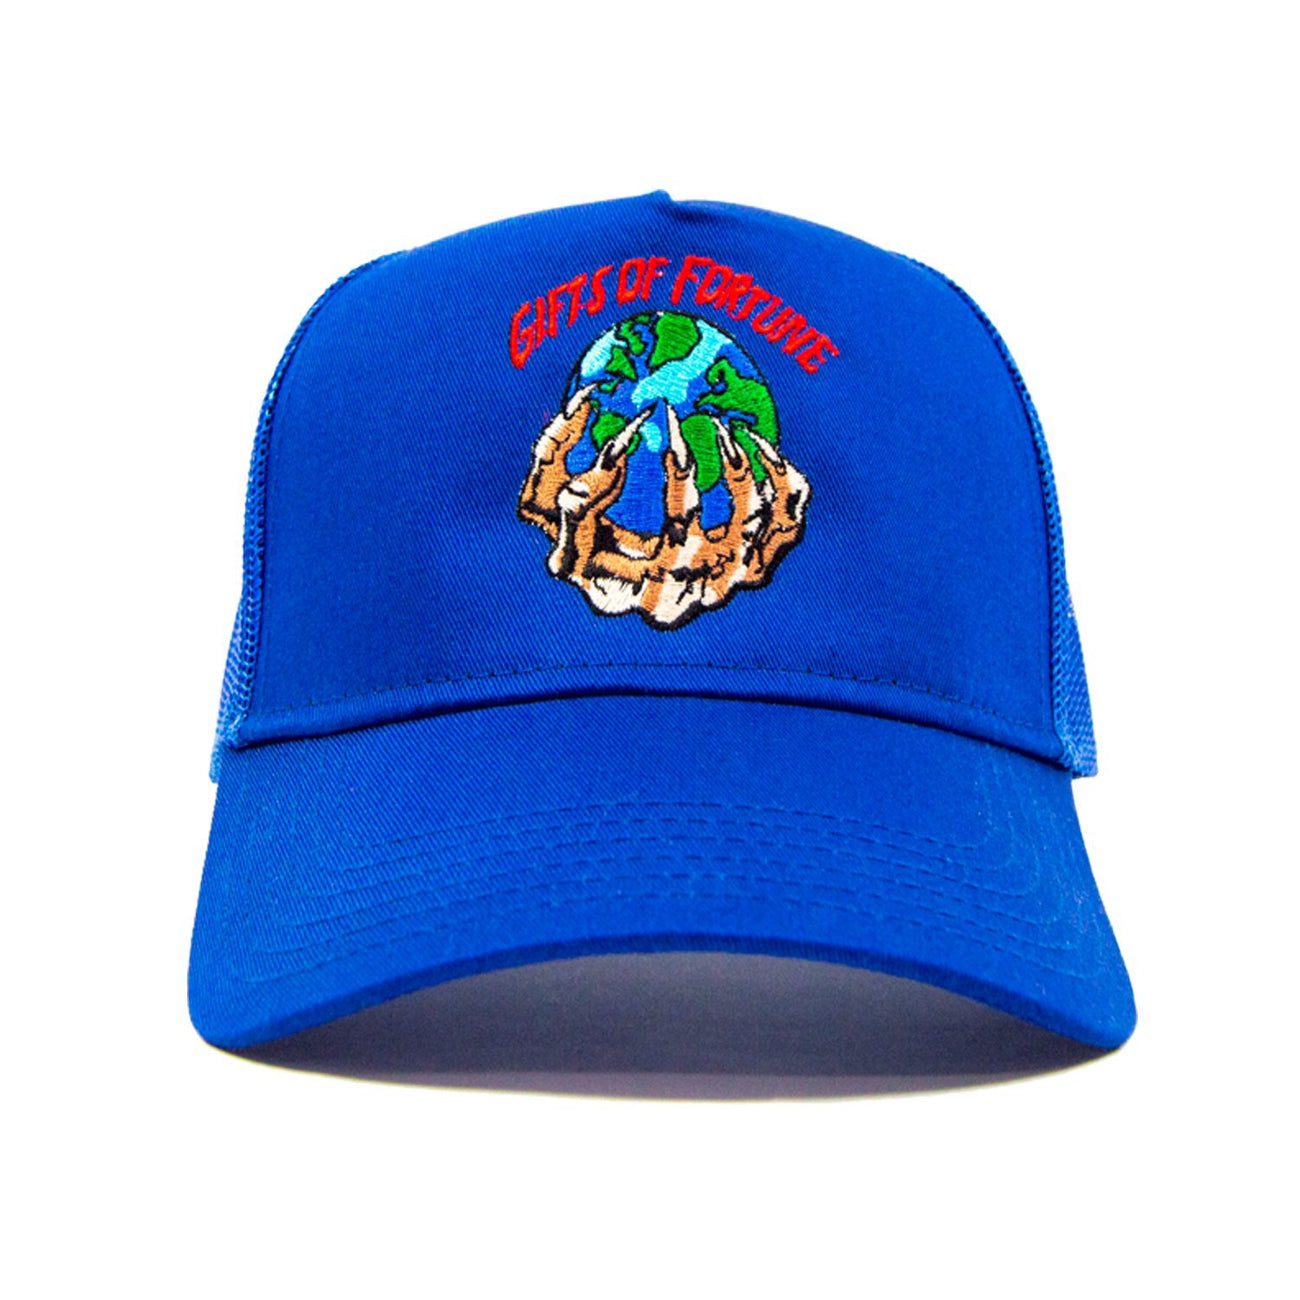 GIFTS OF FORTUNE The World is Yours Trucker Hat | Royal - Capsule NYC